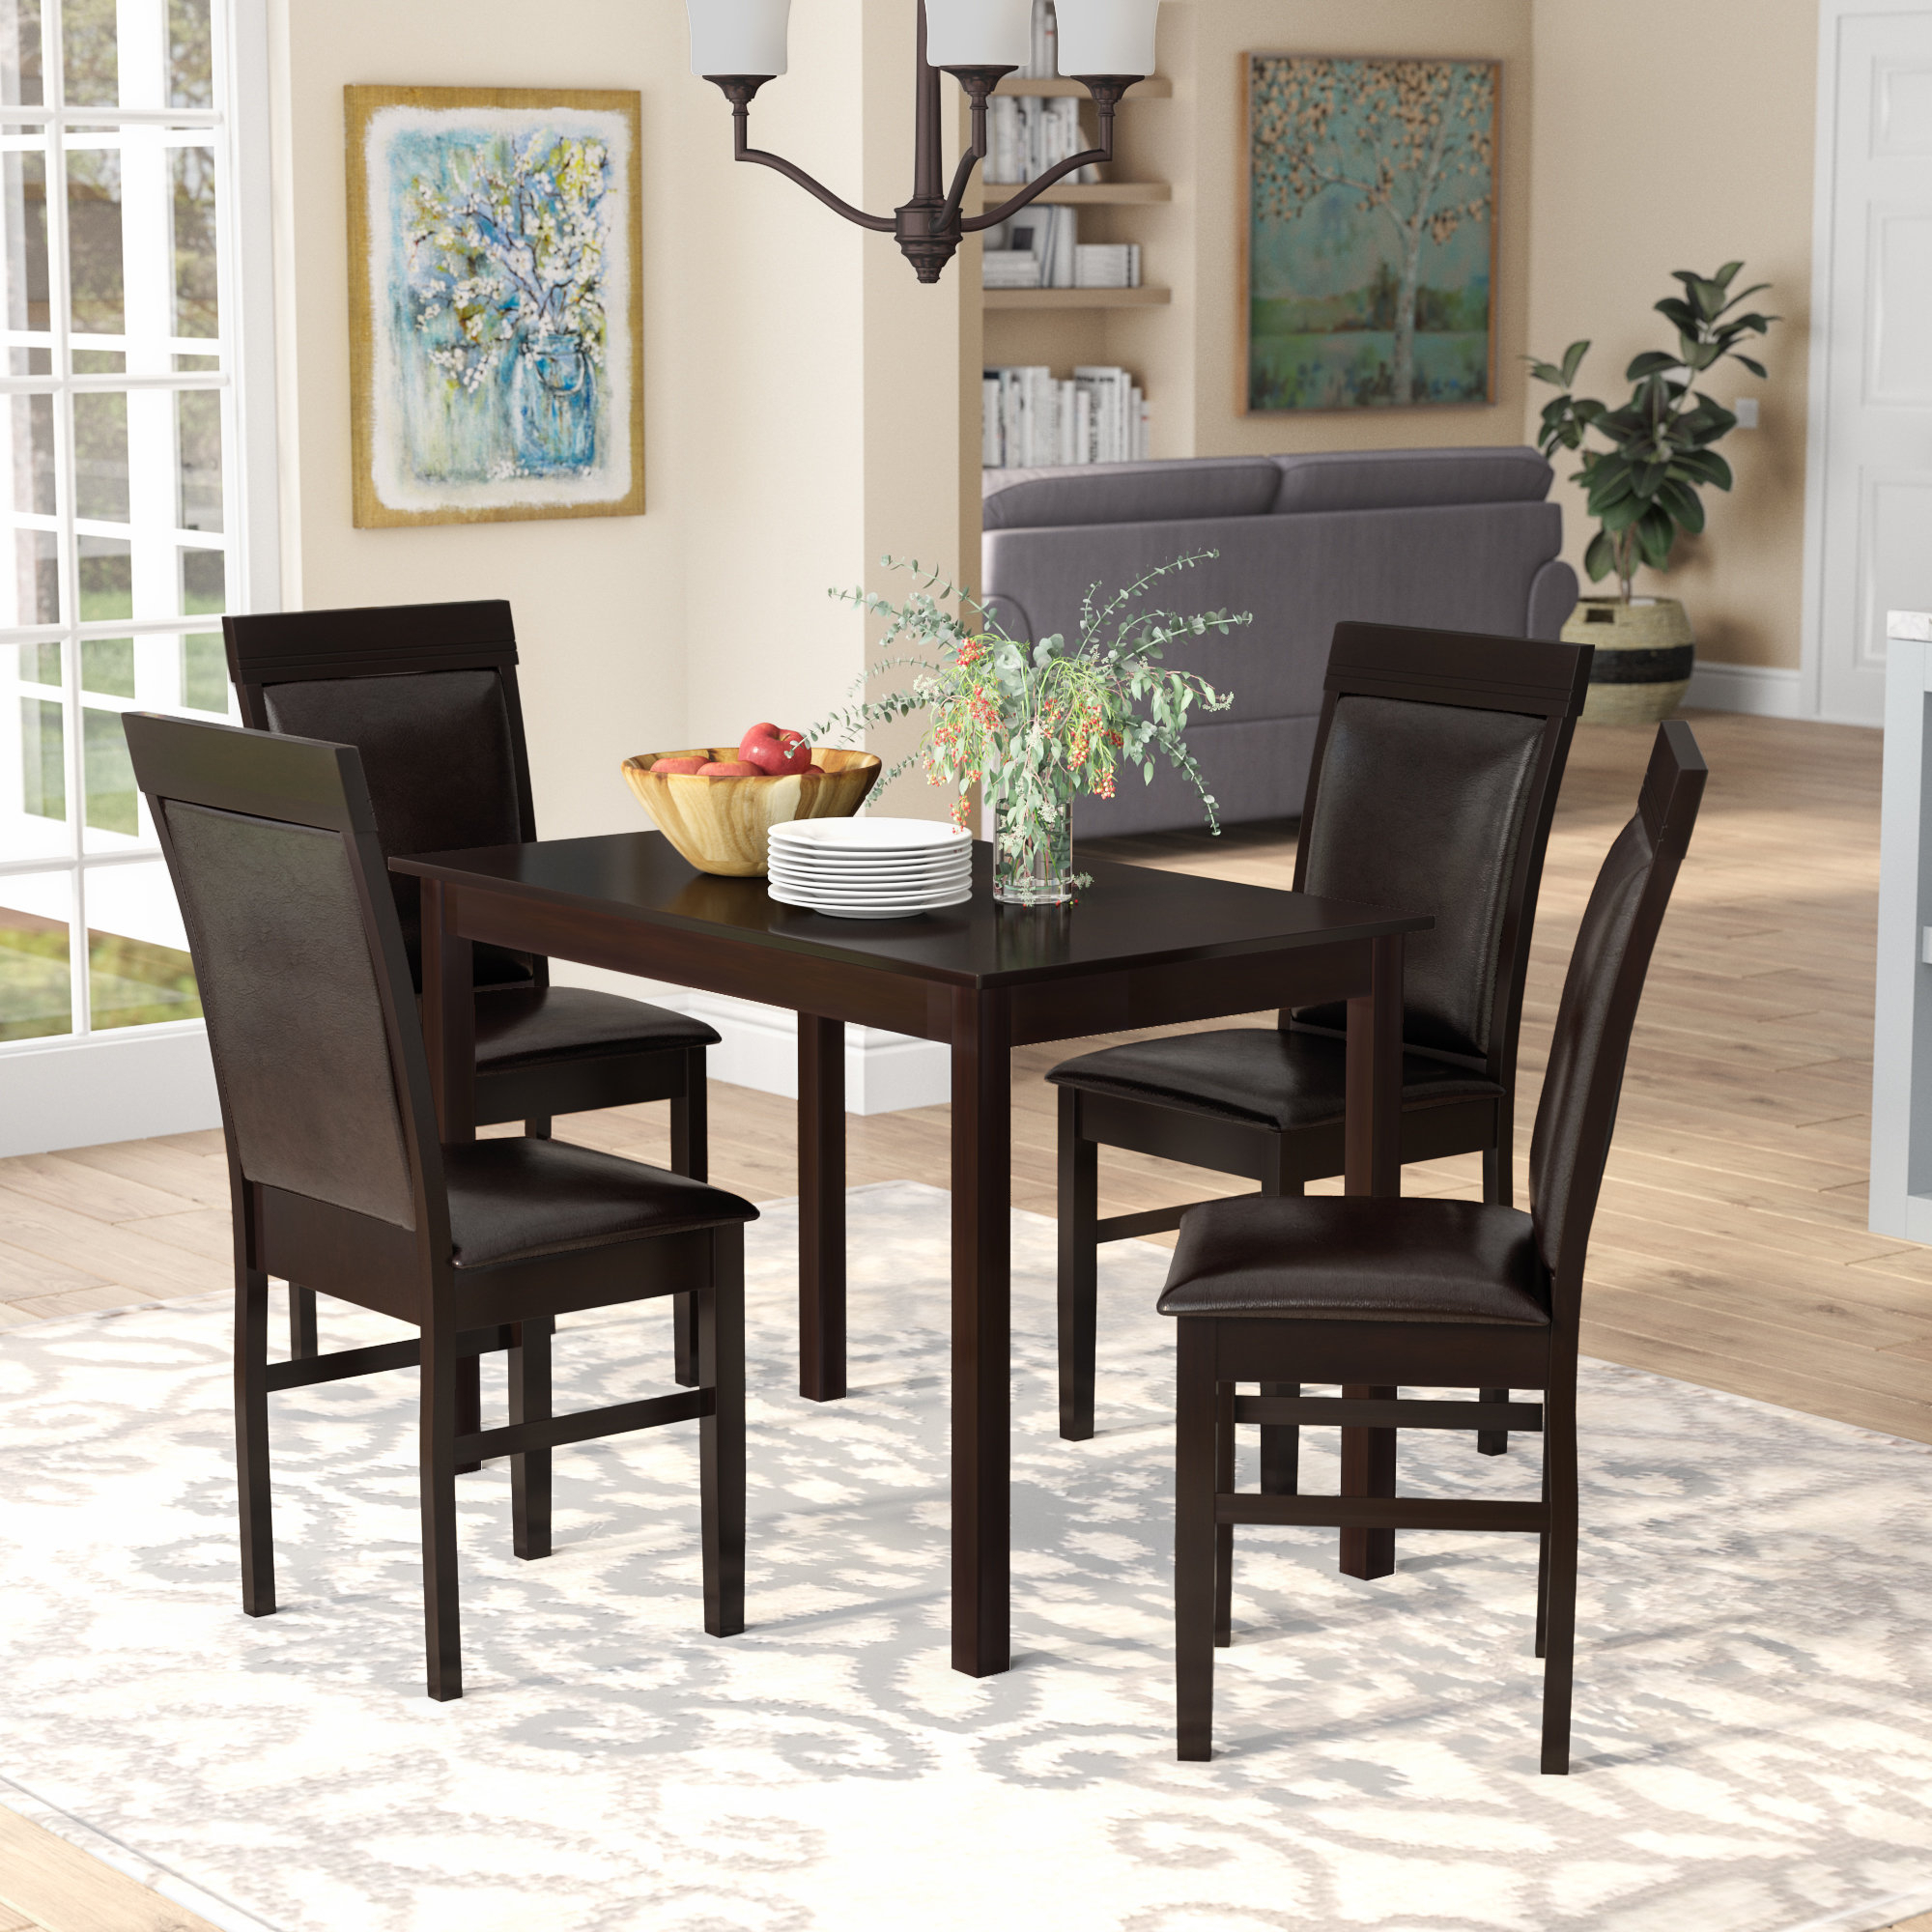 Red Barrel Studio Kisor Modern And Contemporary 5 Piece Breakfast Regarding Well Known 5 Piece Breakfast Nook Dining Sets (View 2 of 25)